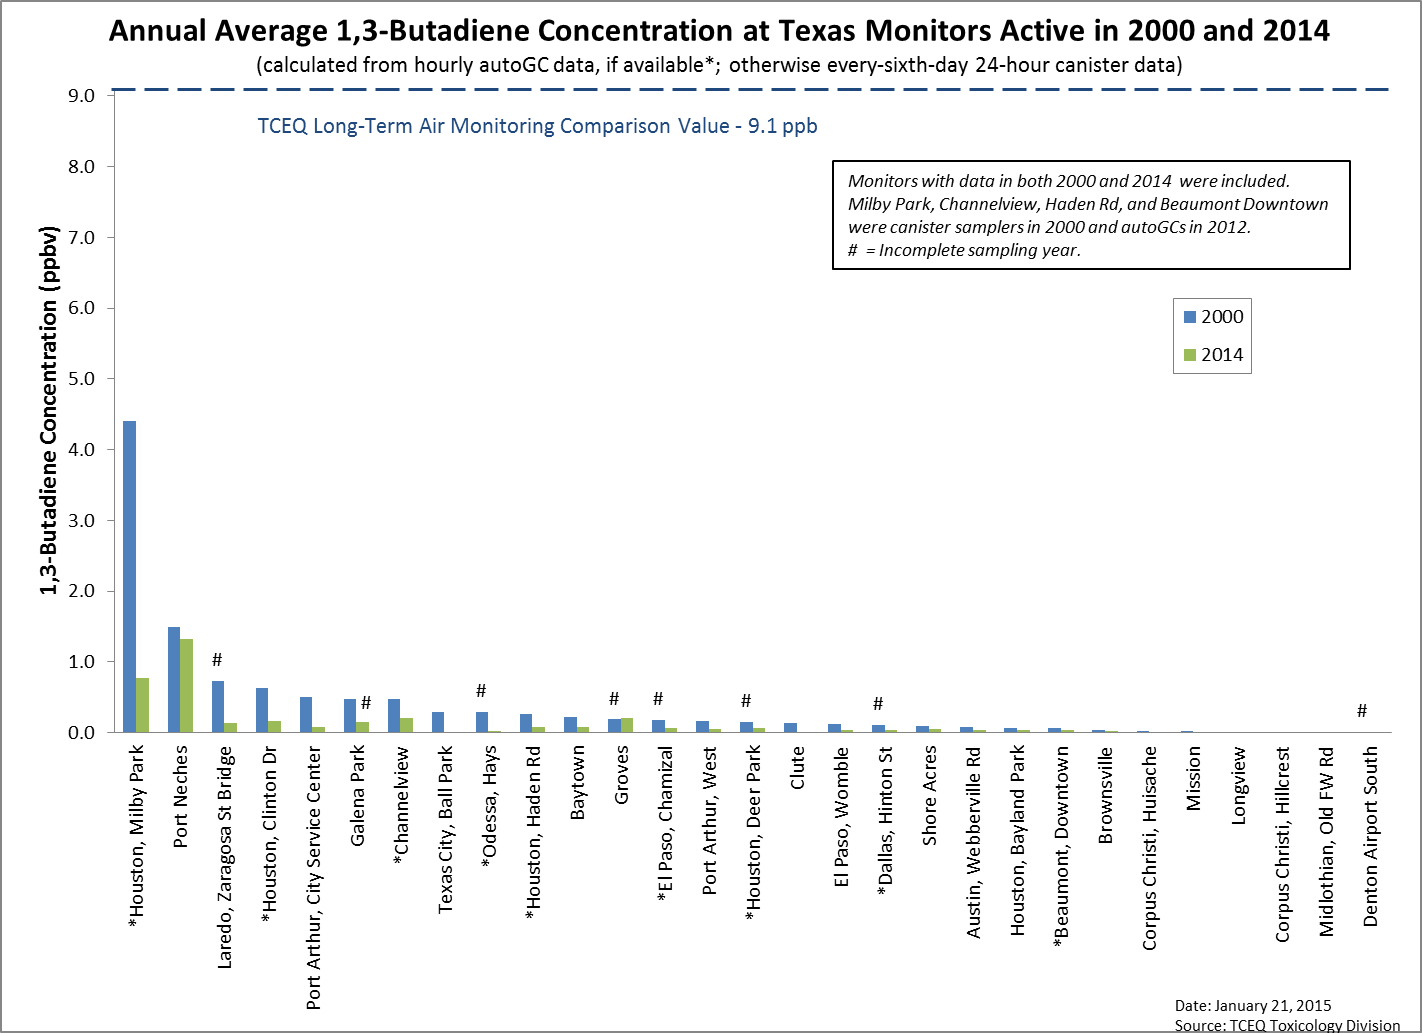 Annual average 1,3 butadiene concentration at Houston monitoring sites active in 2000 and 2014